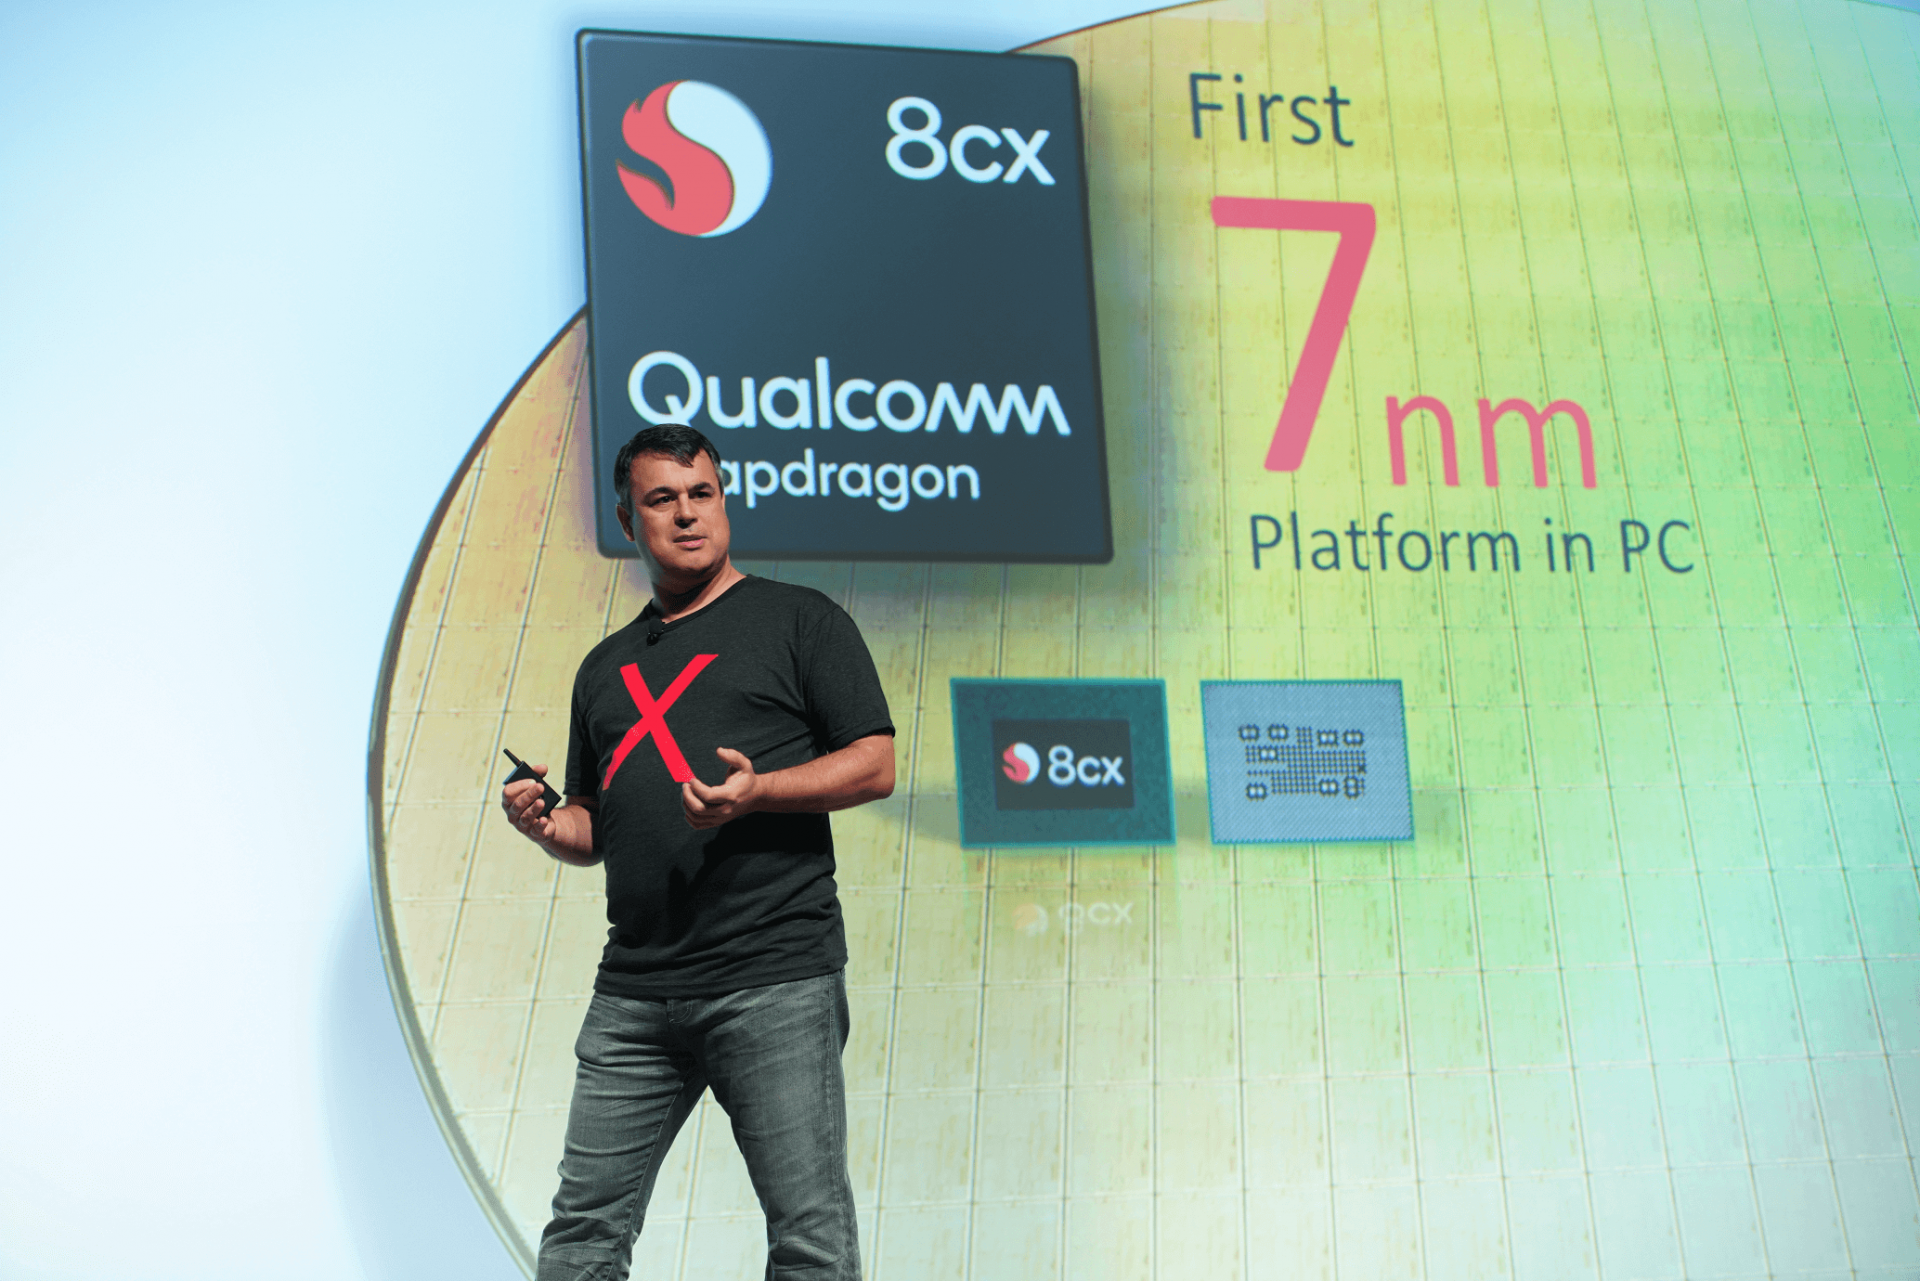 Snapdragon 8cx é o novo processador da Qualcomm para PCs com Windows